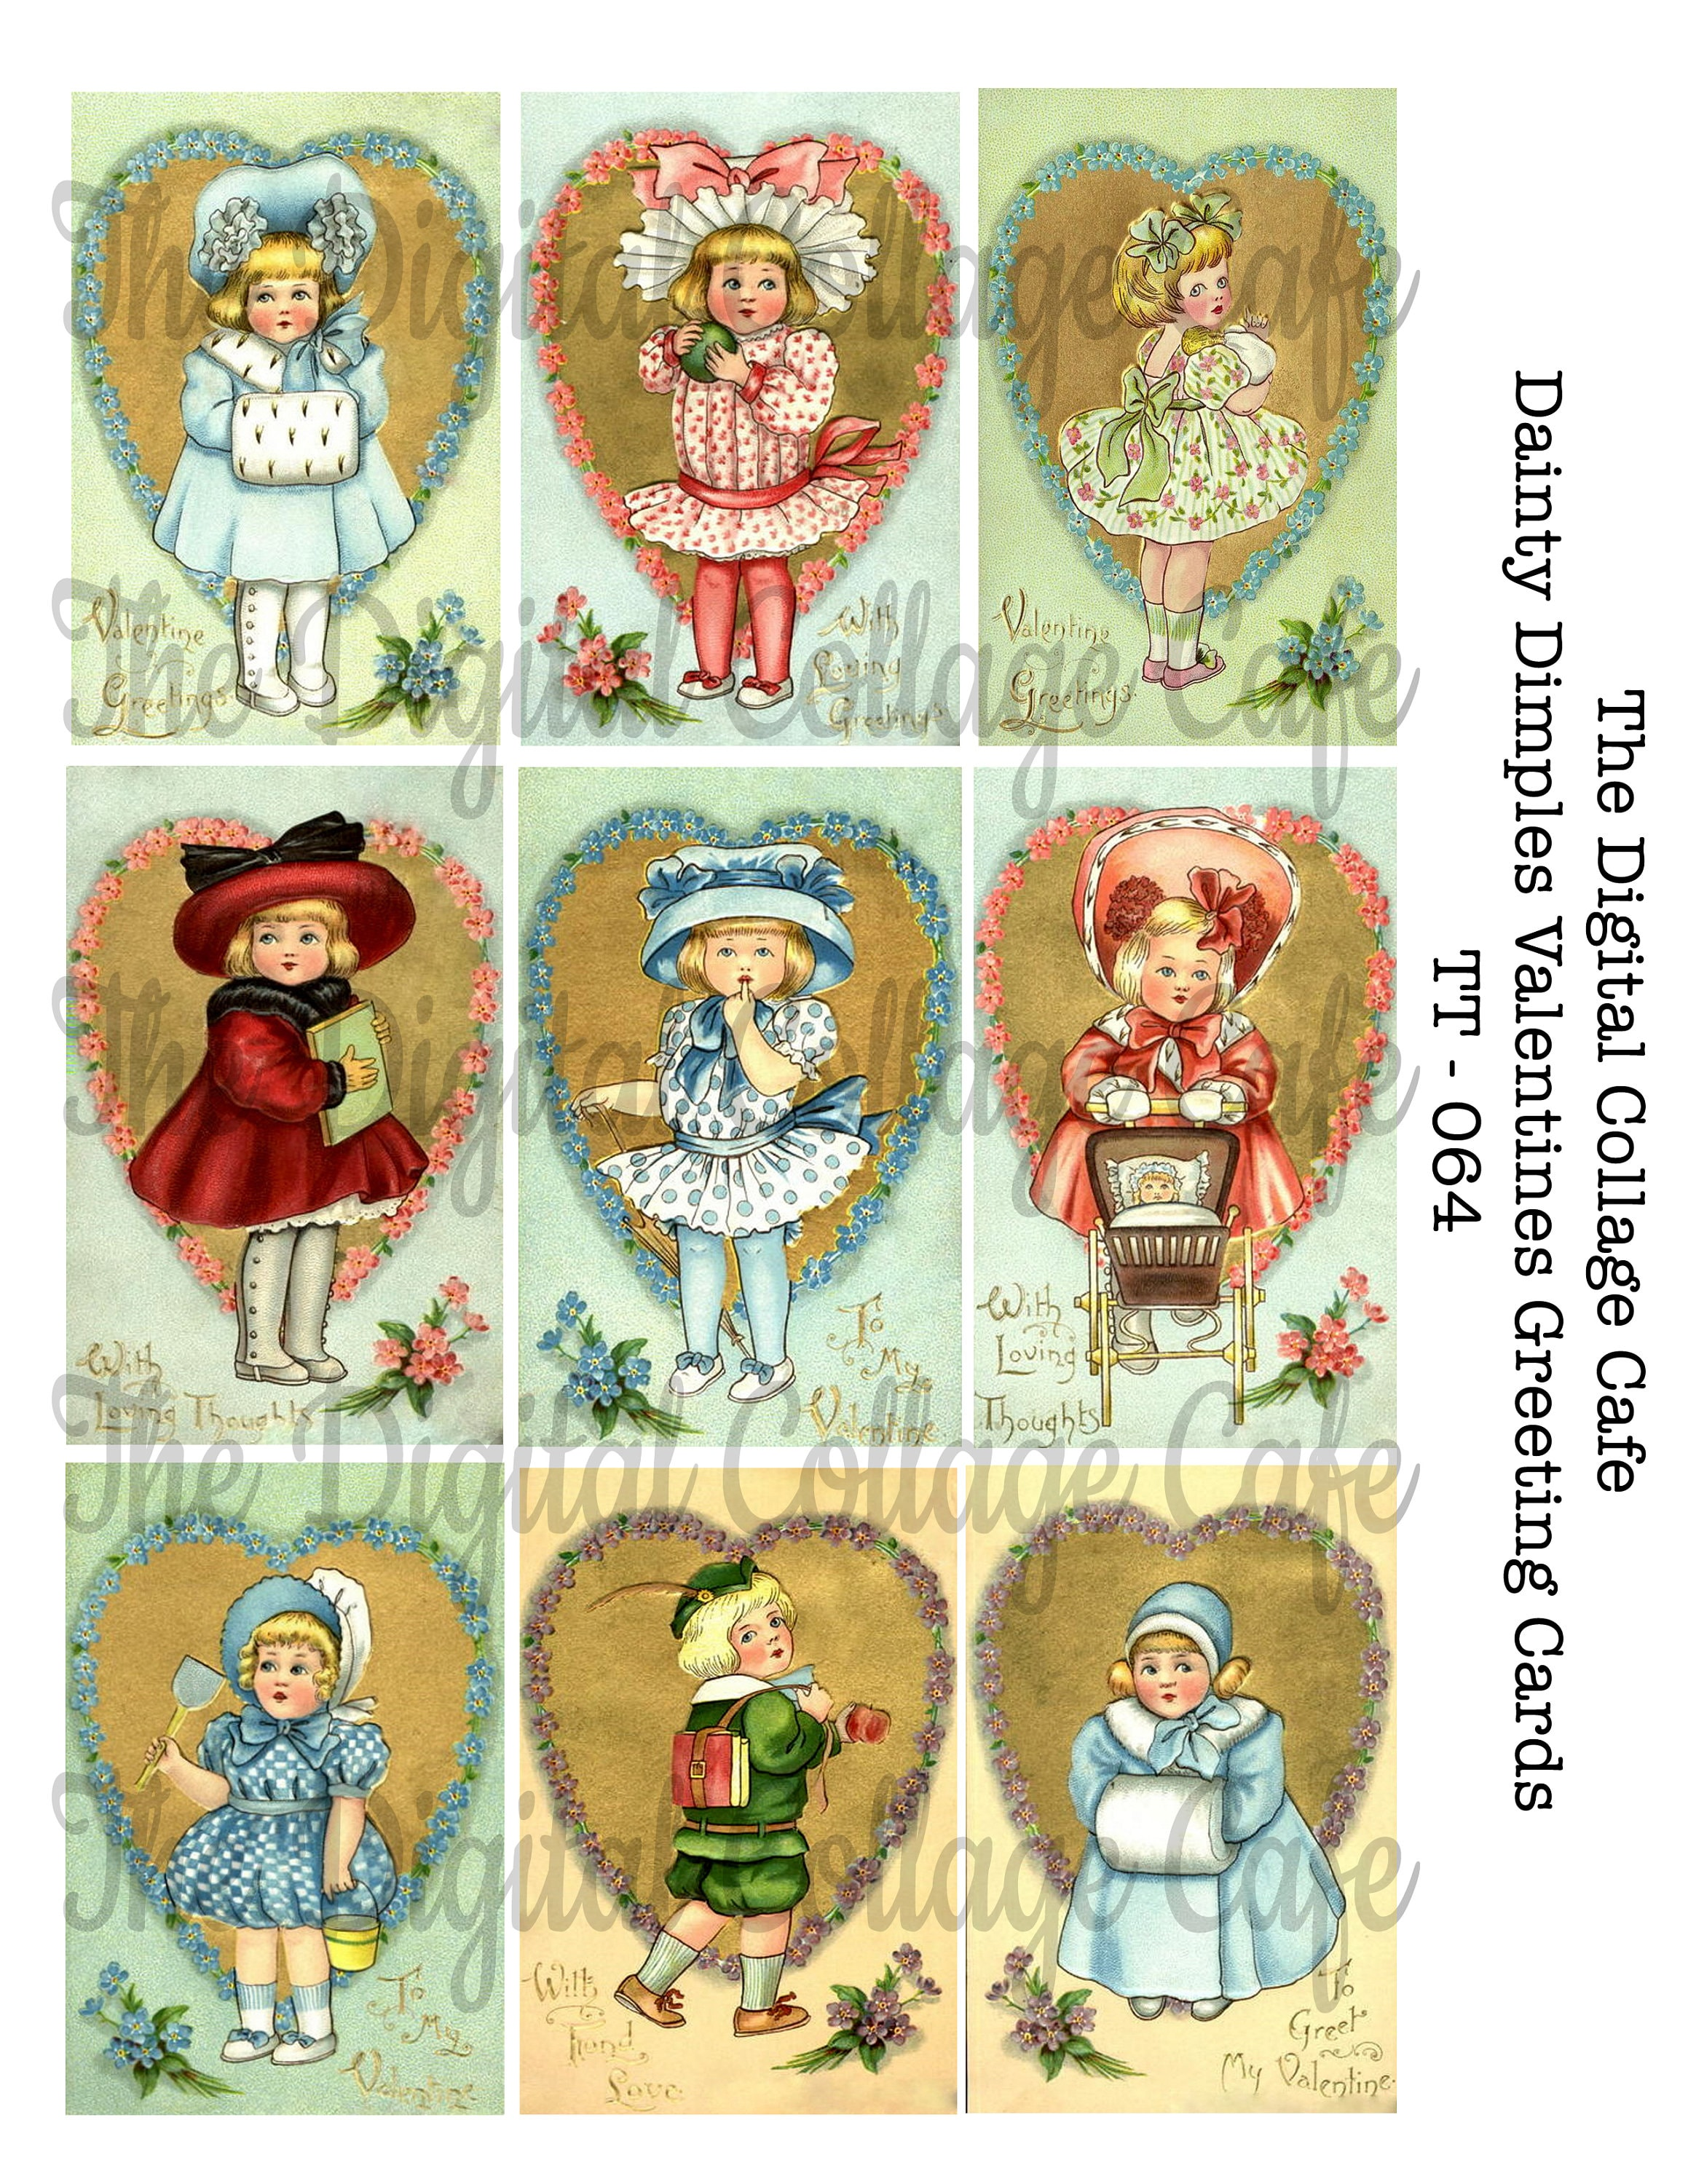 Dainty Dimples Valentines Greeting Cards Digital Collage Sheet